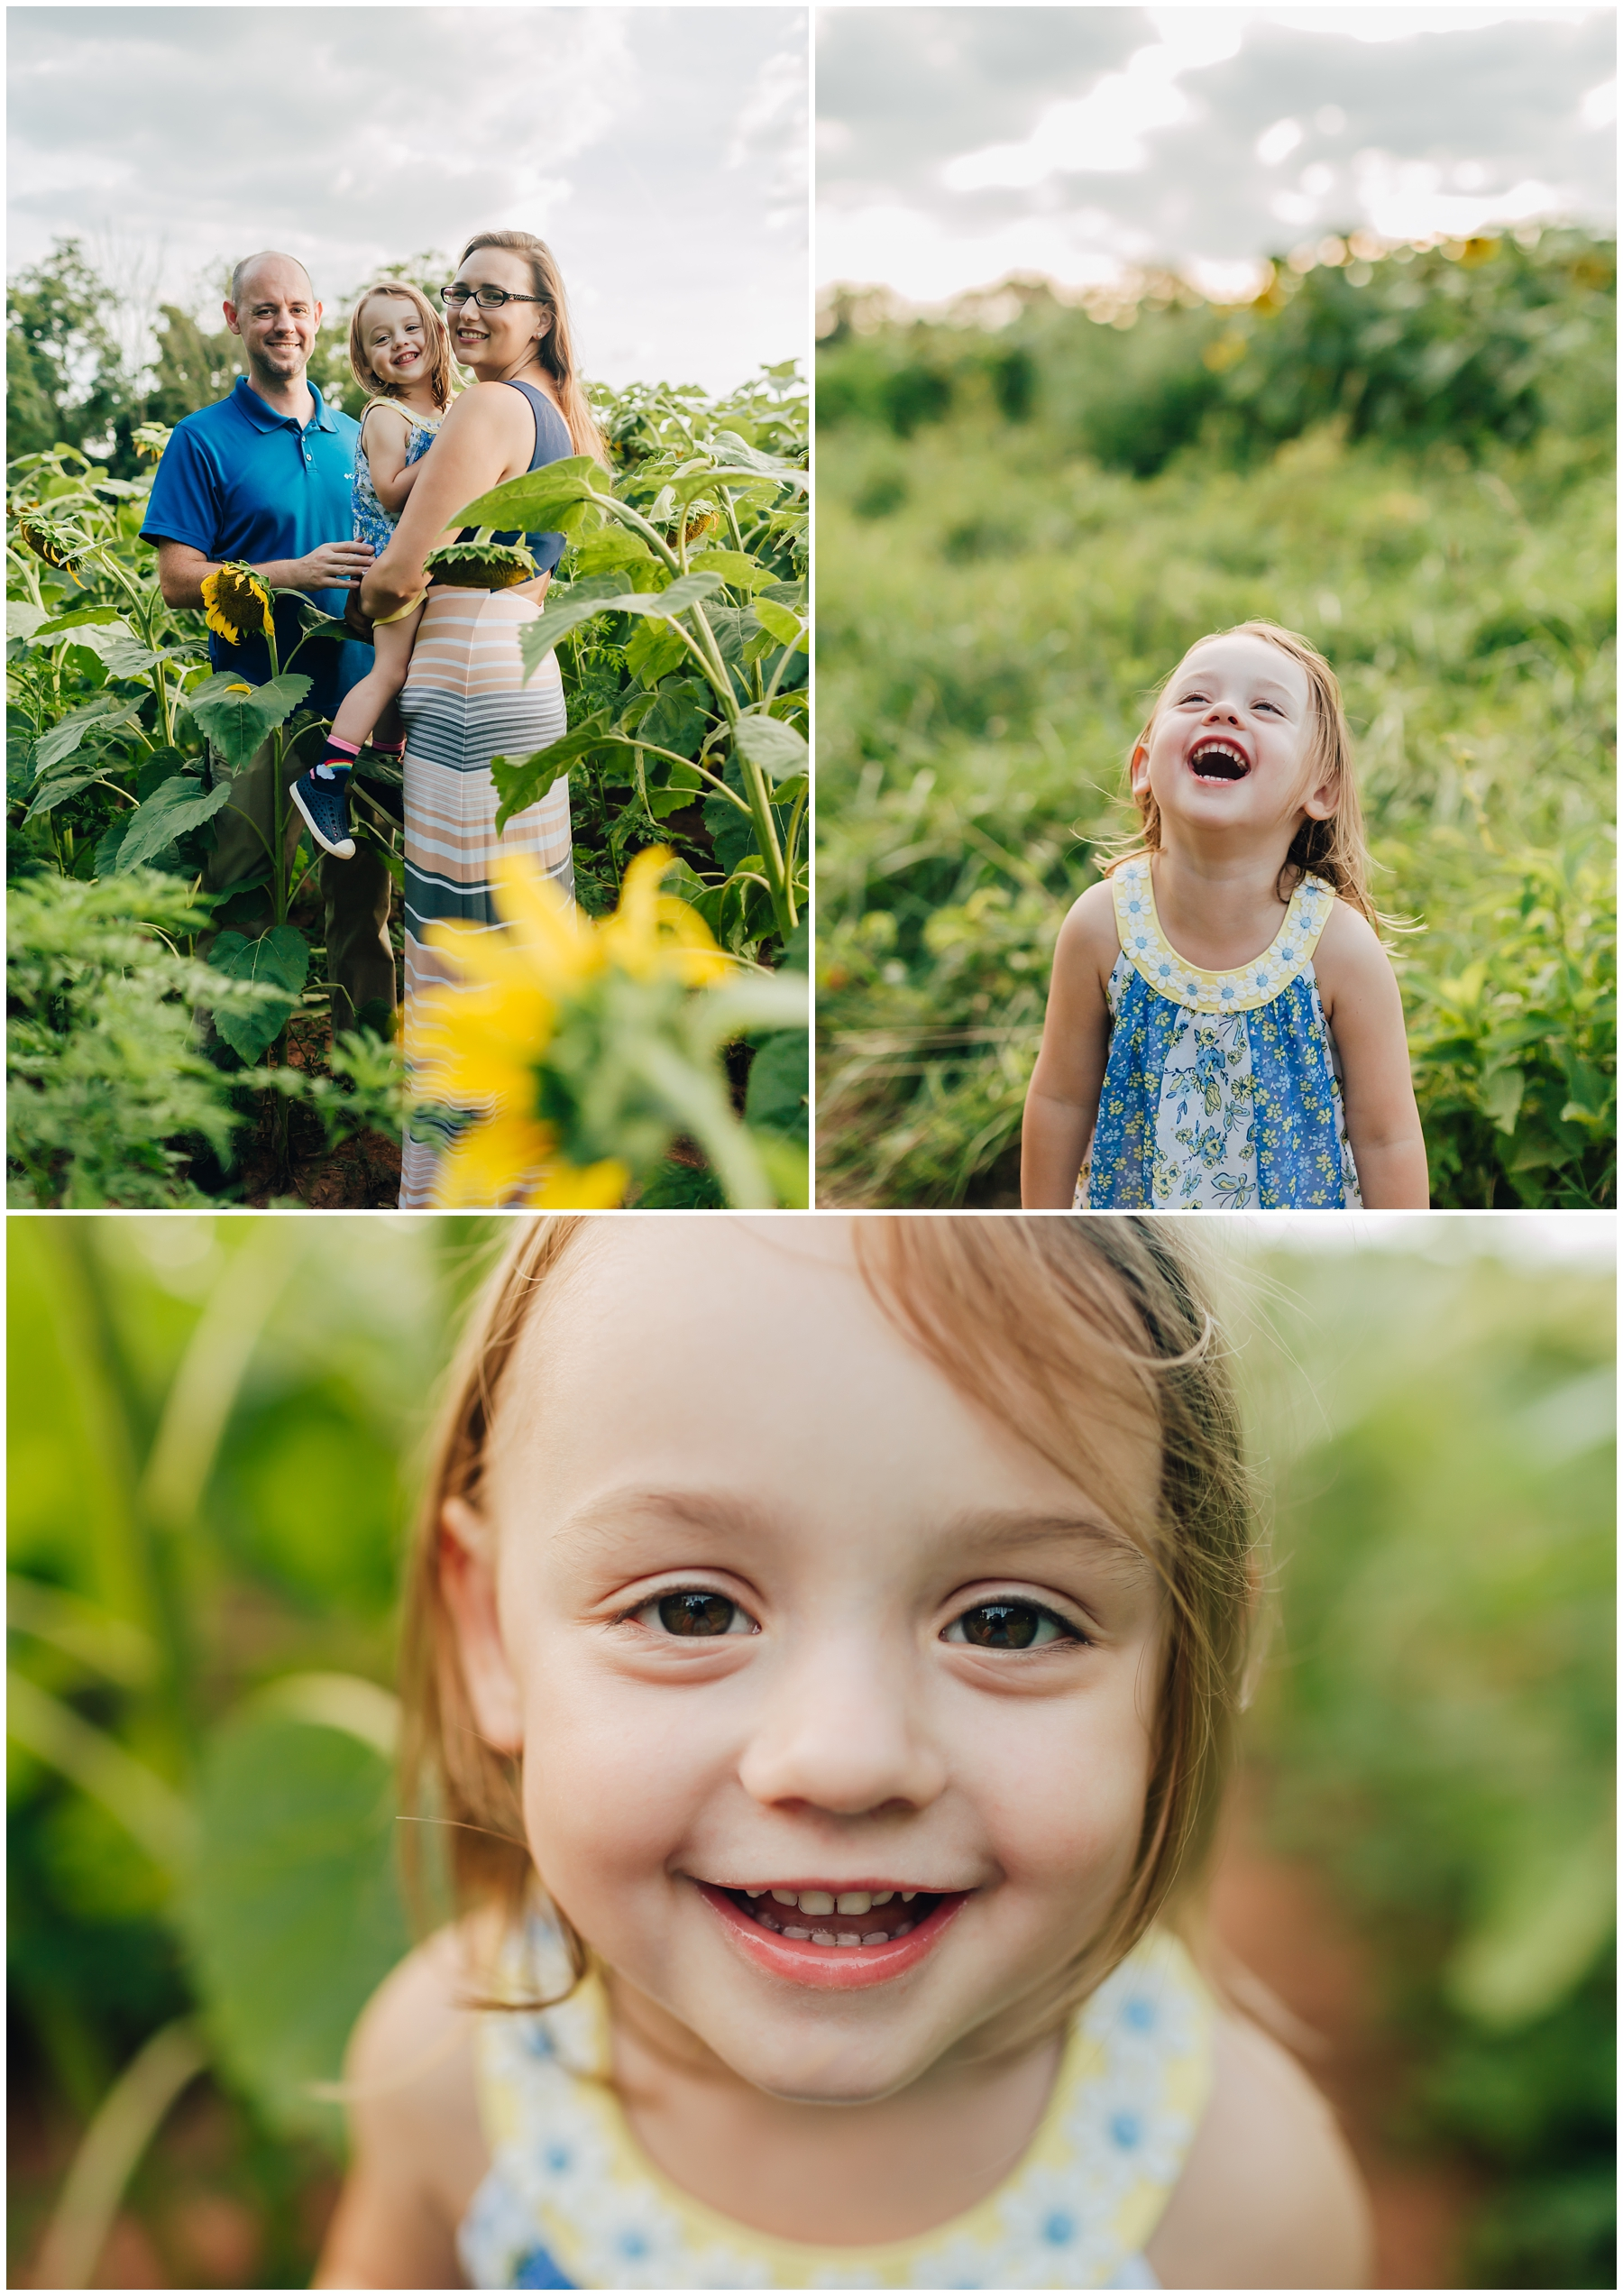 mckee-beshers-sunflowers-family-photography-2.jpg